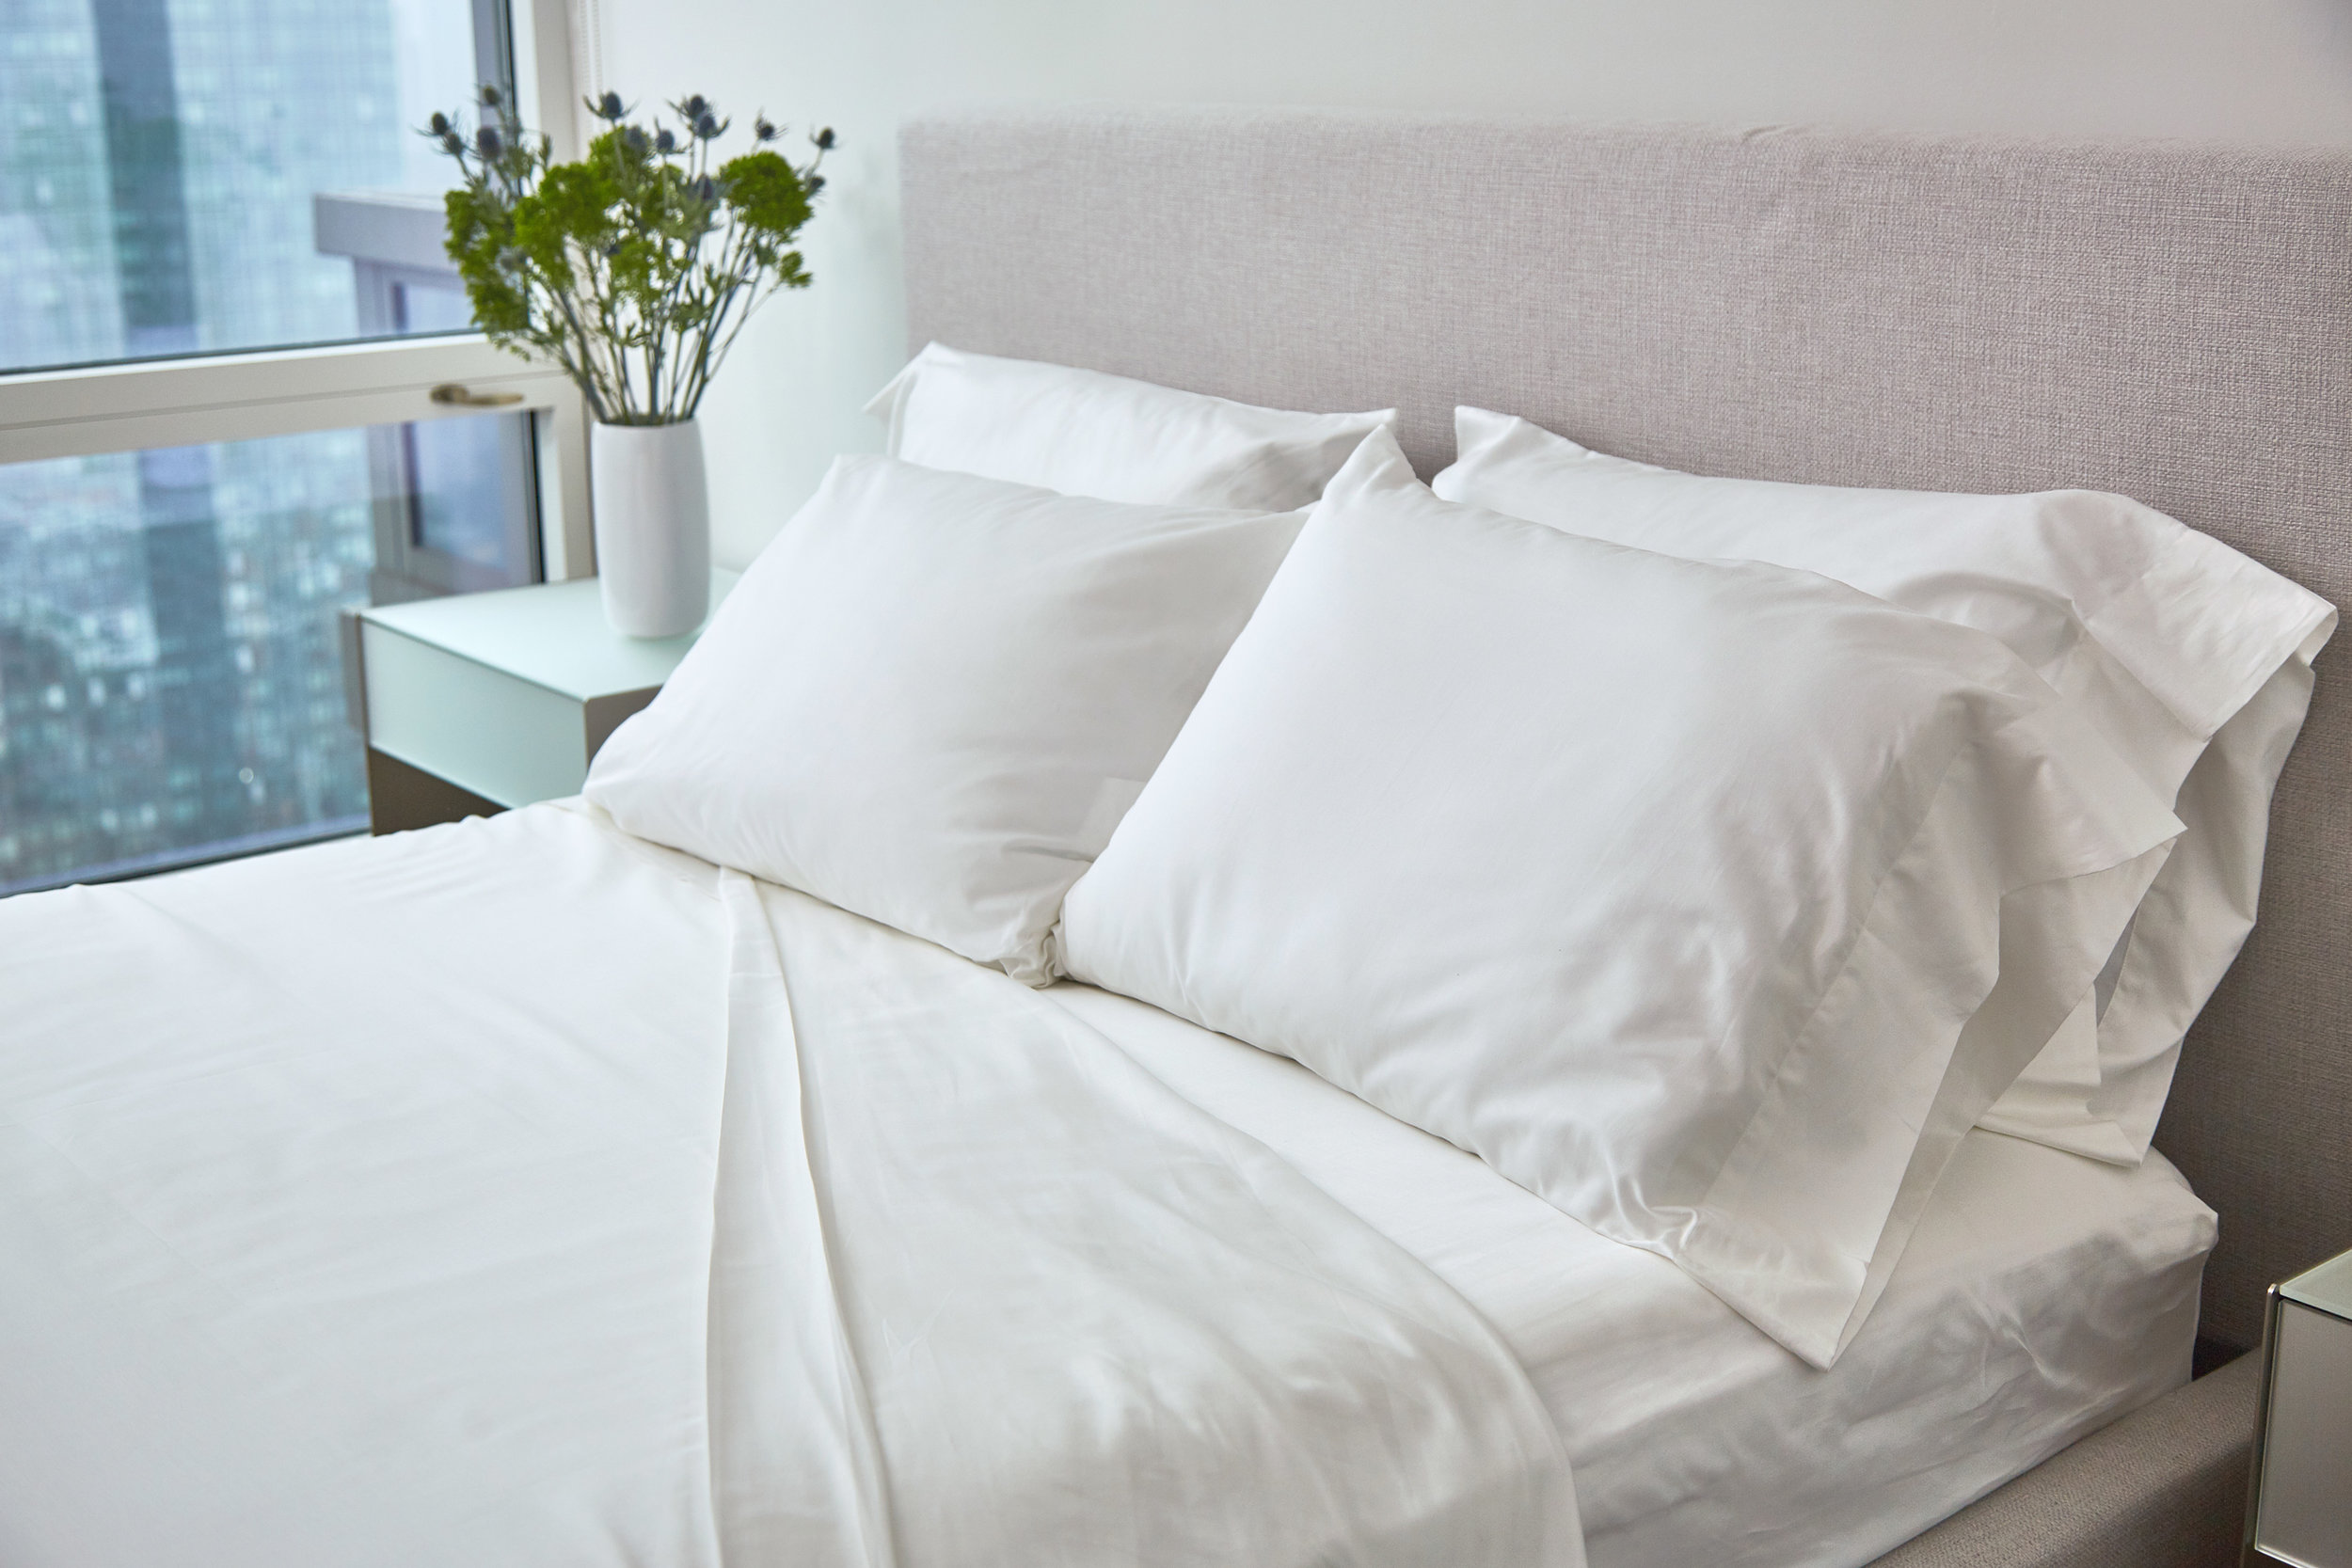 UN_FARM_TO_HOME_BED_SHEETS_WHITE1110_XRET.jpg